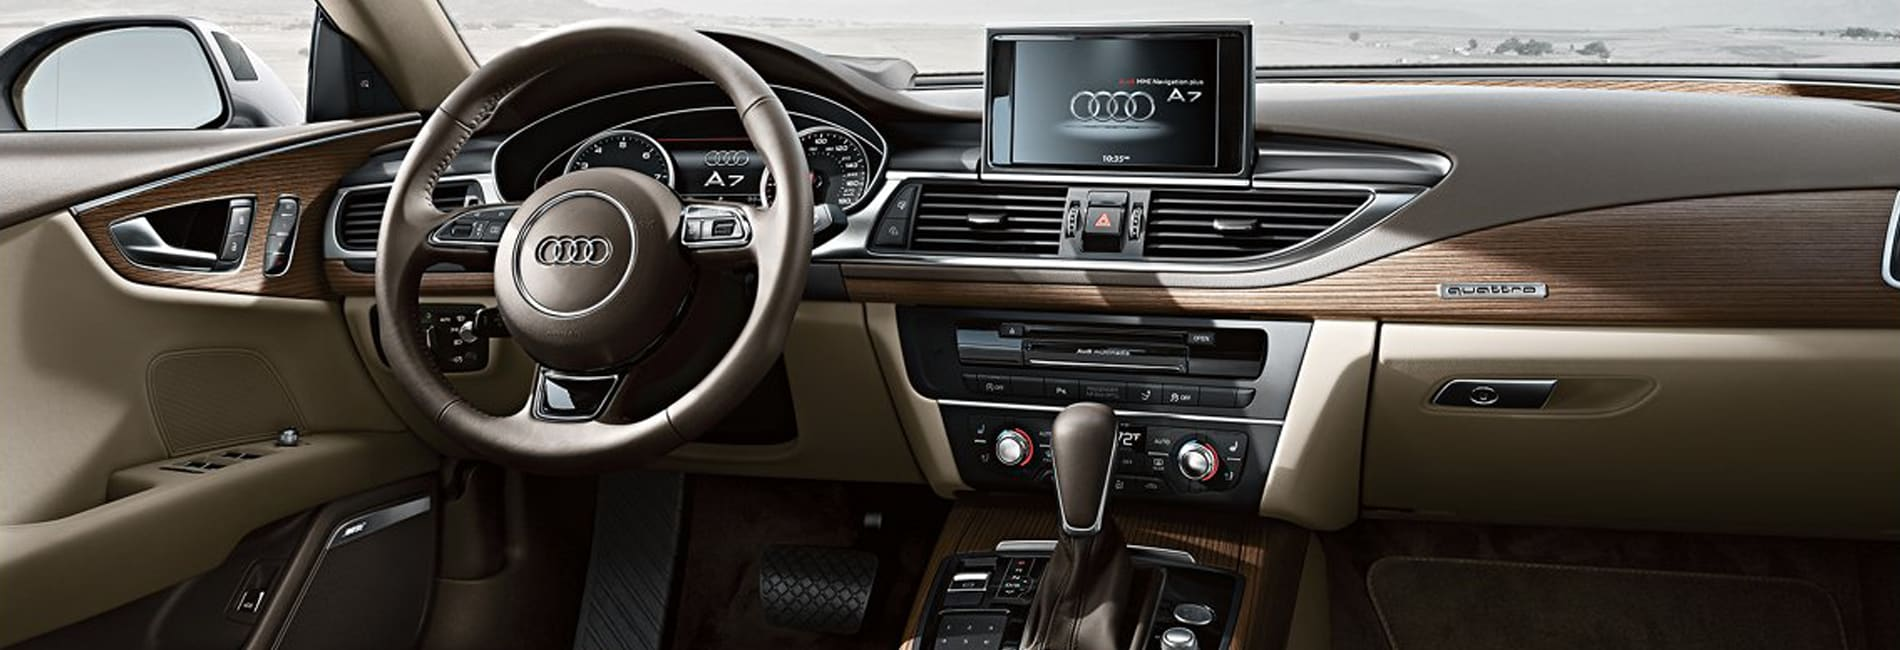 Audi A7 Interior Vehicle Features